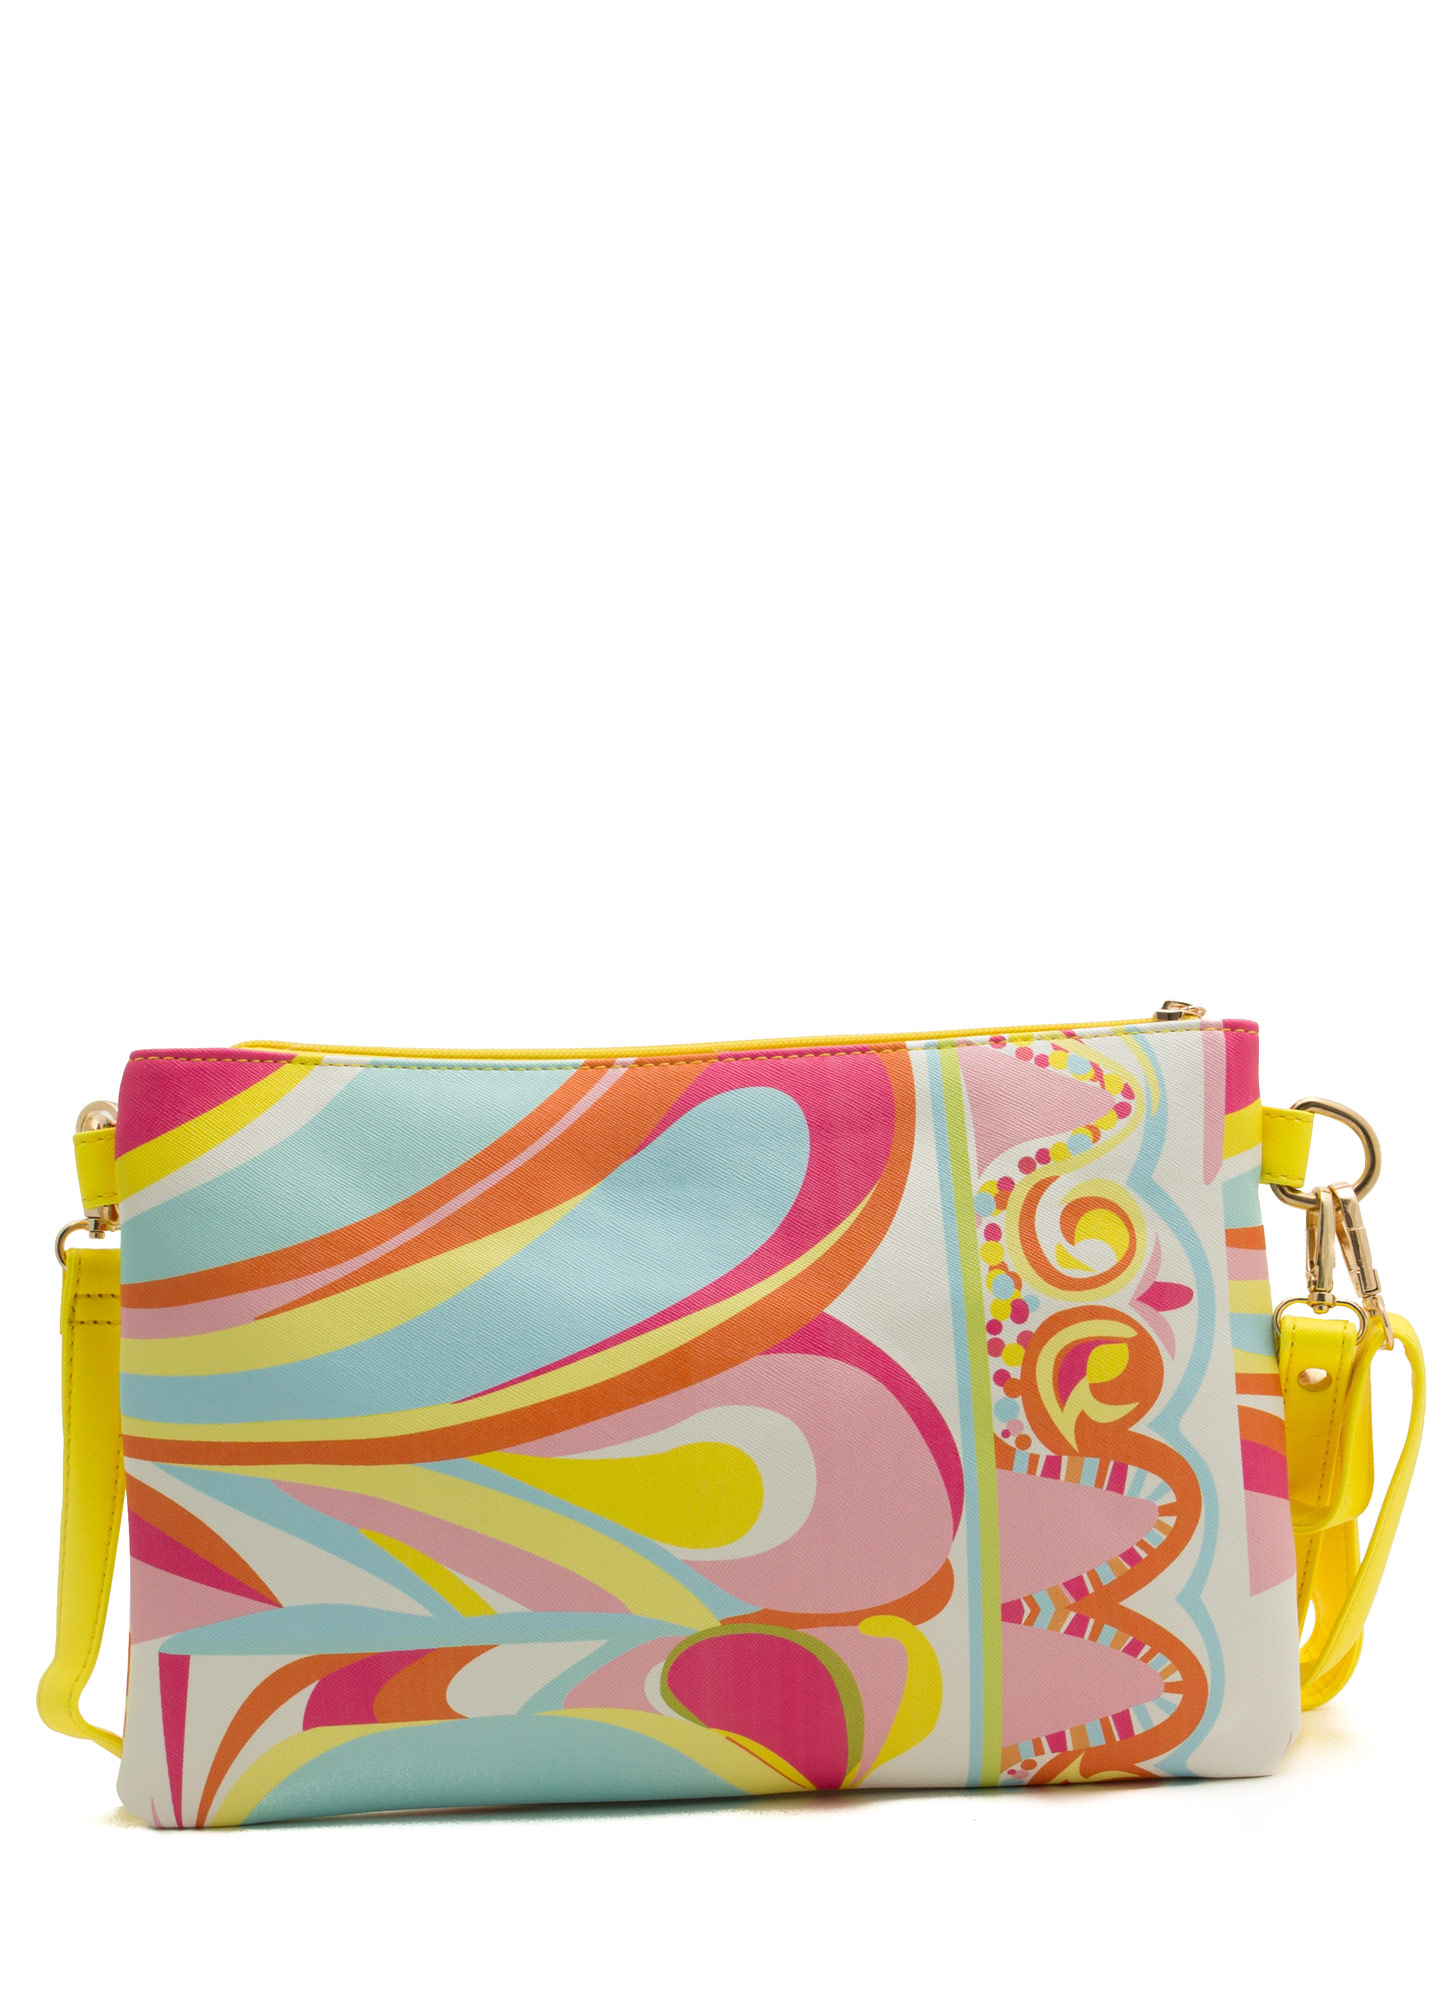 Contrasting Patterned Clutch YELLOWWHT